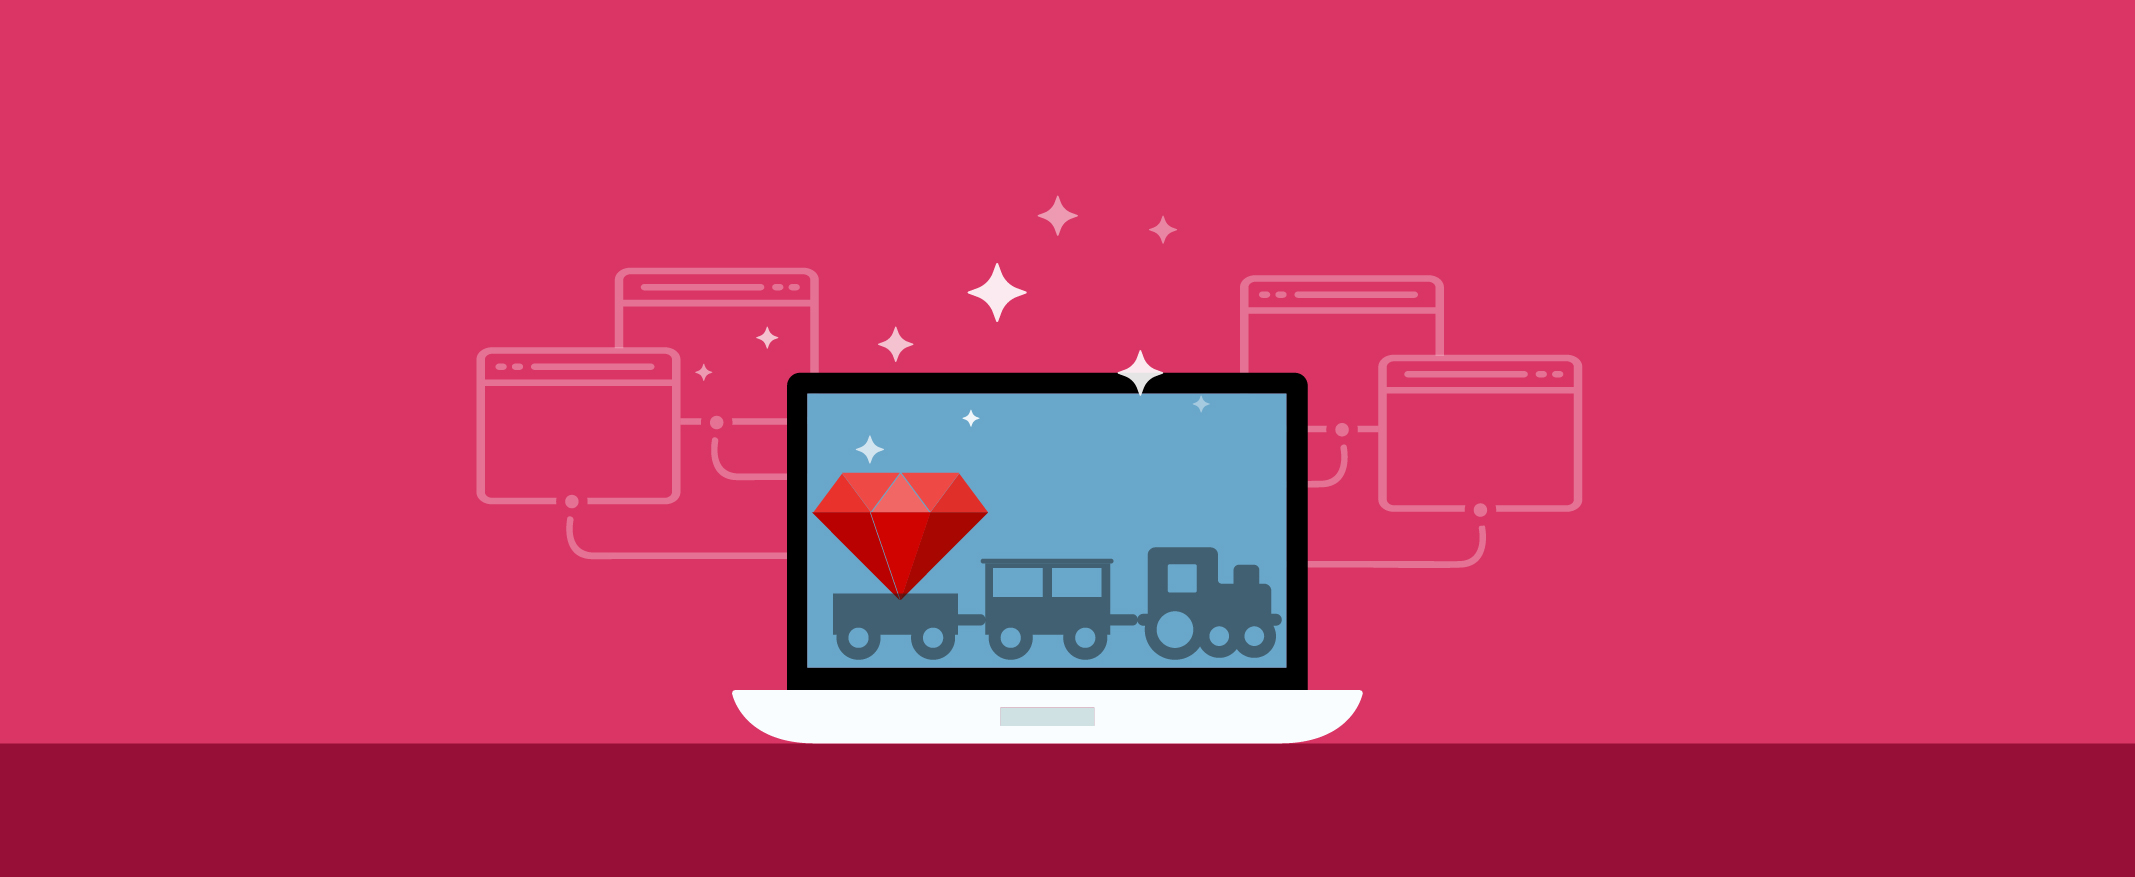 Is Ruby on Rails Dead?